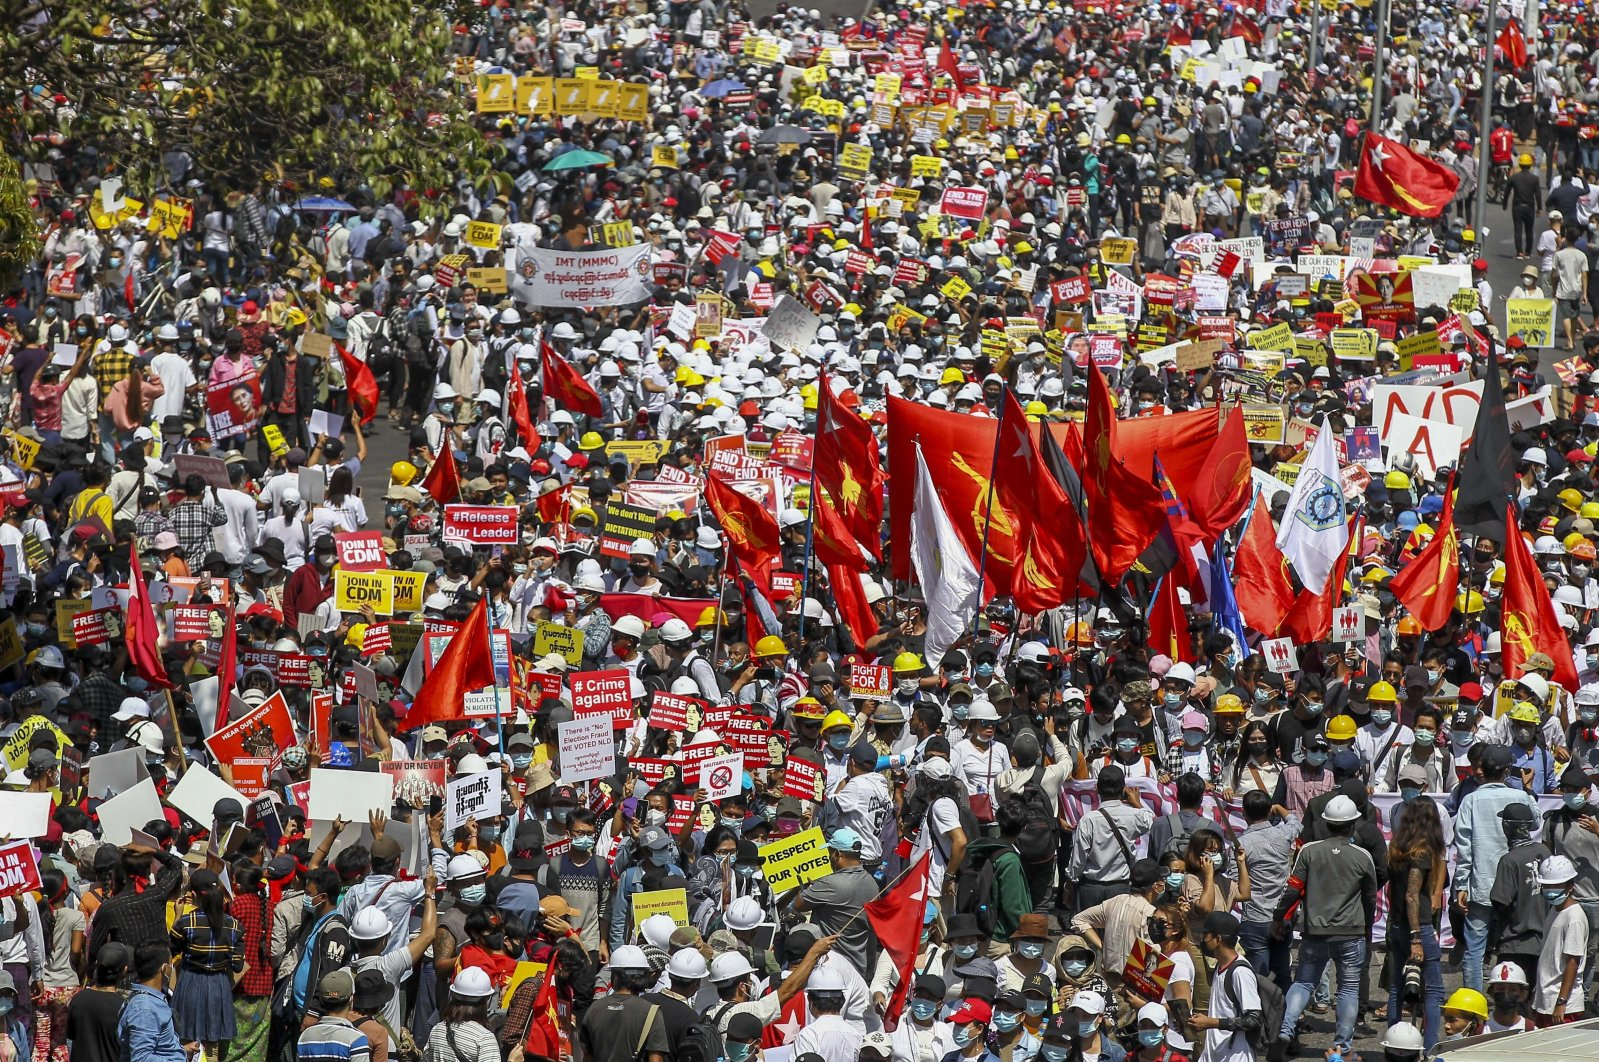 Demonstrators gather at an intersection close to Sule Pagoda to protest against the military coup in Yangon, Myanmar, Feb. 17, 2021. (AP Photo)